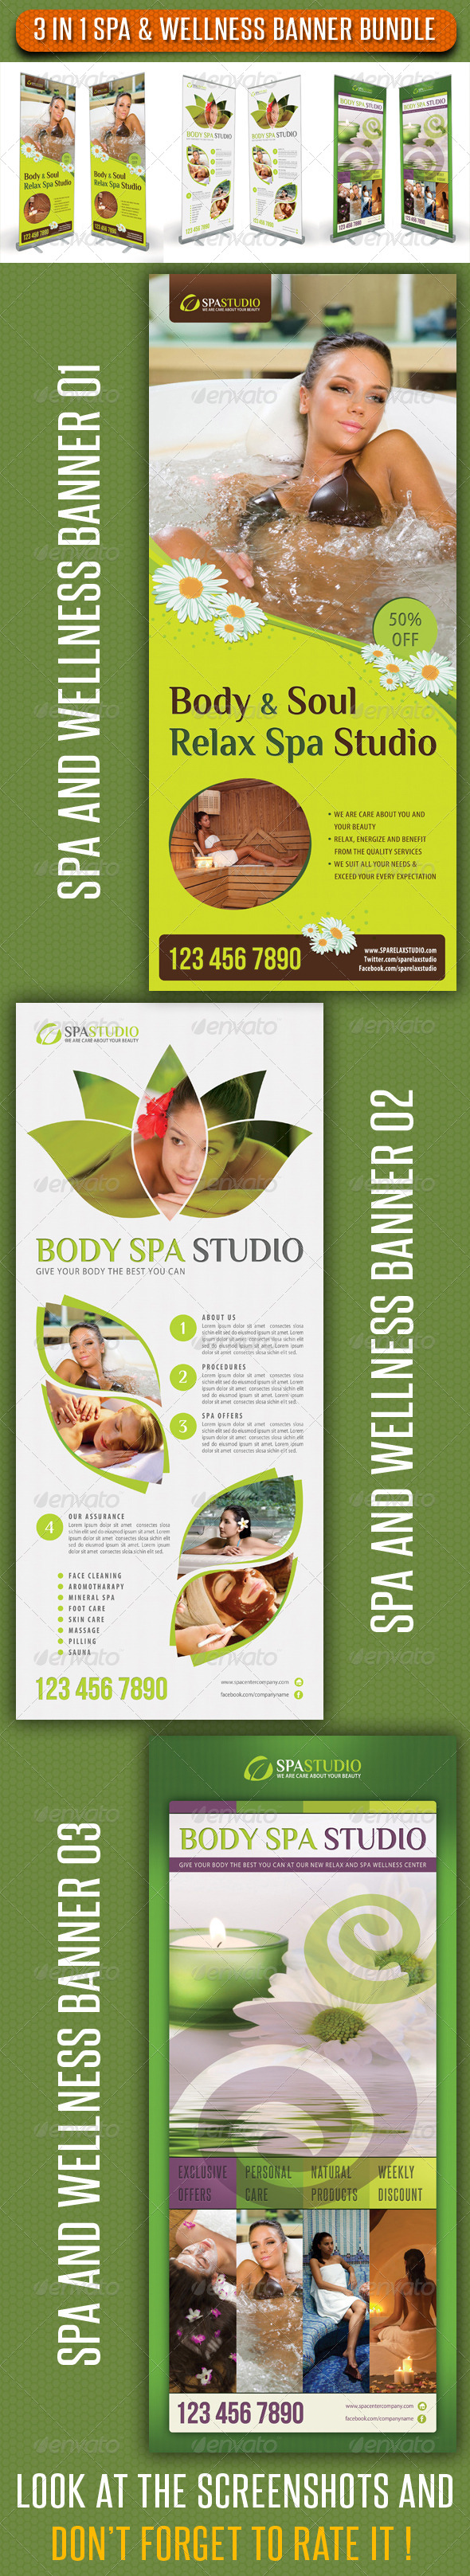 3 in 1 Spa Wellness Banner Bundle 02 - Signage Print Templates